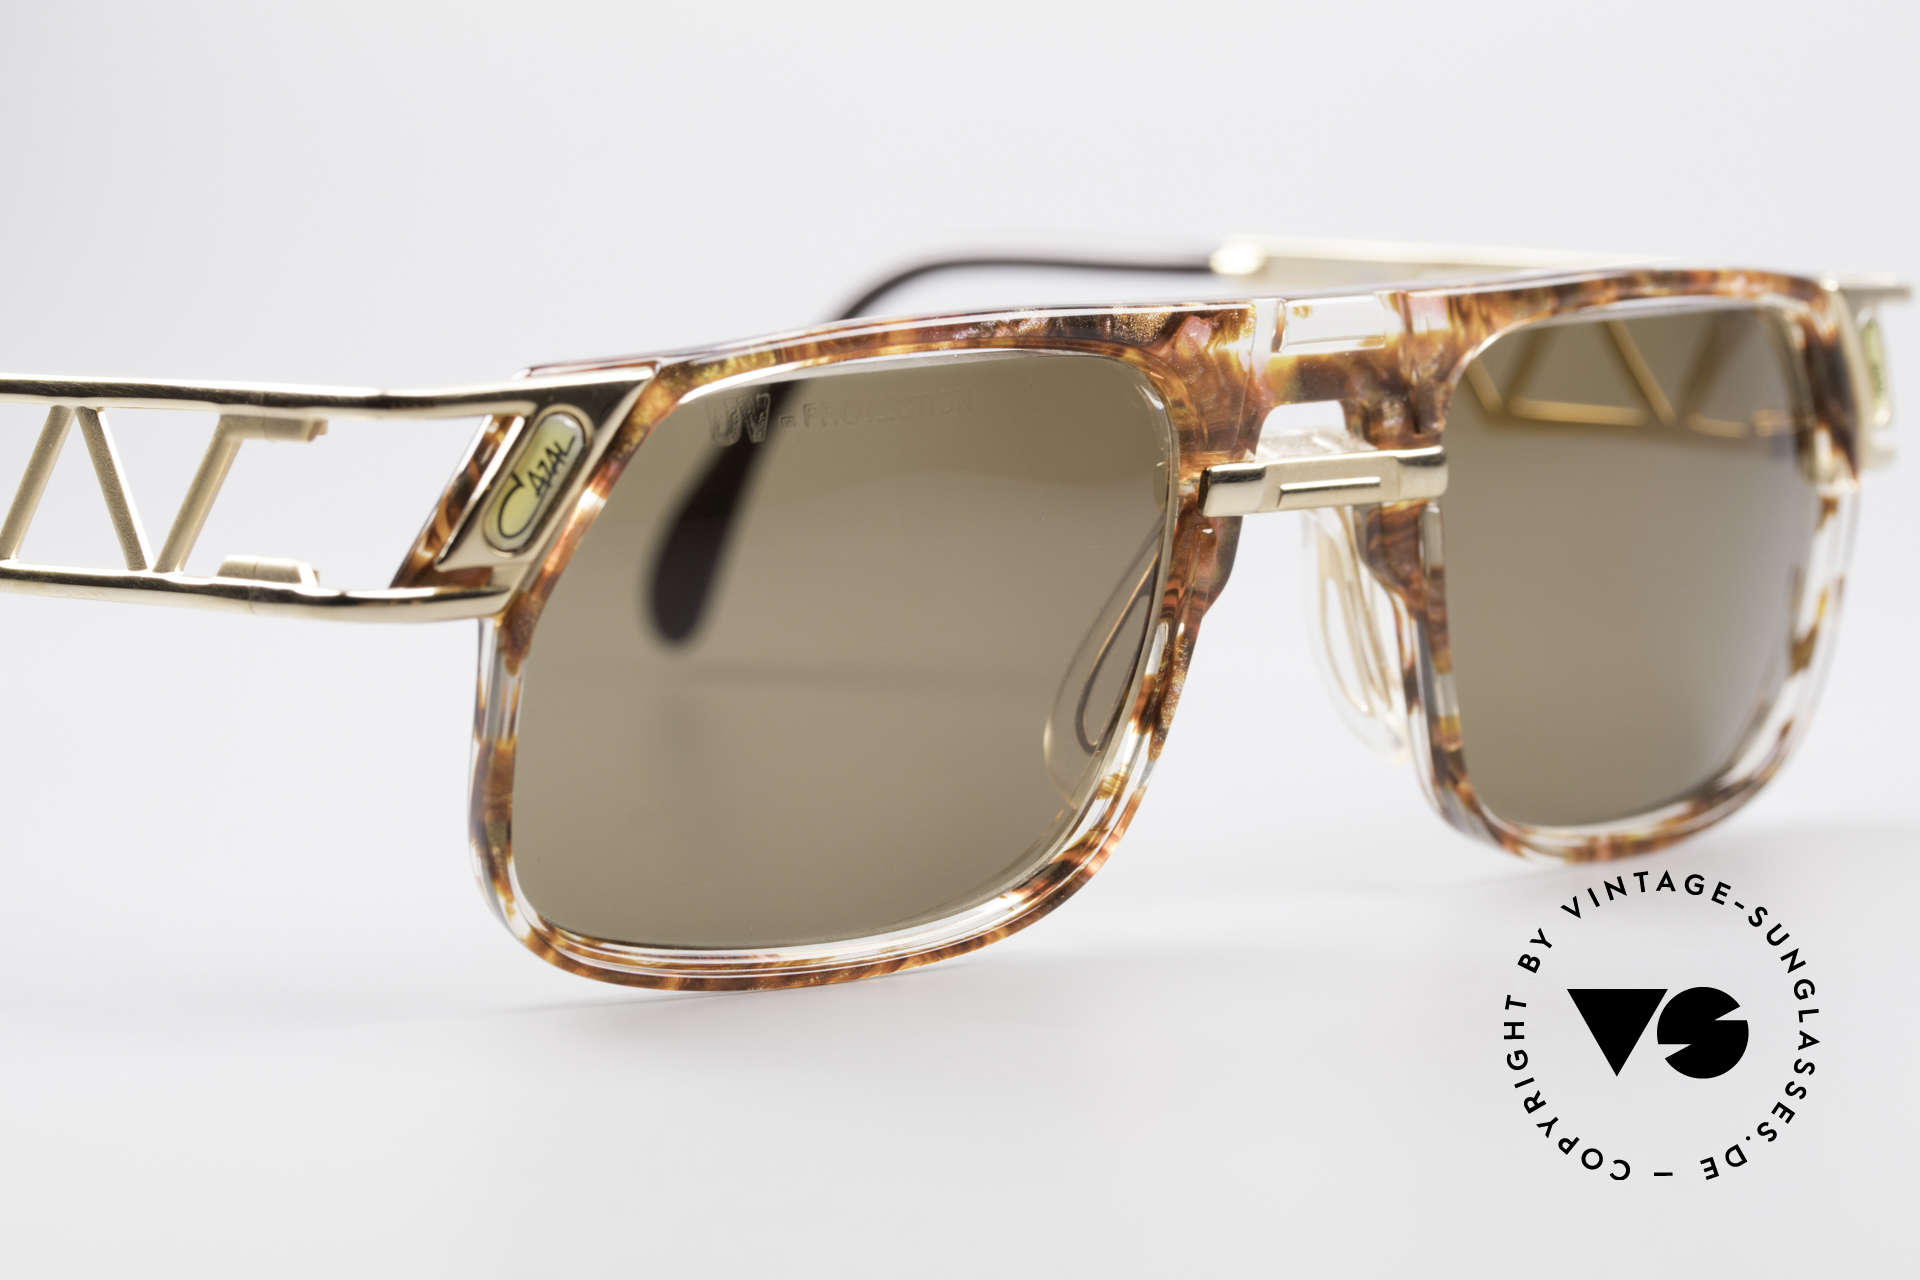 Cazal 876 True 90's No Retro Sunglasses, never worn (like all our rare vintage designer sunglasses), Made for Men and Women